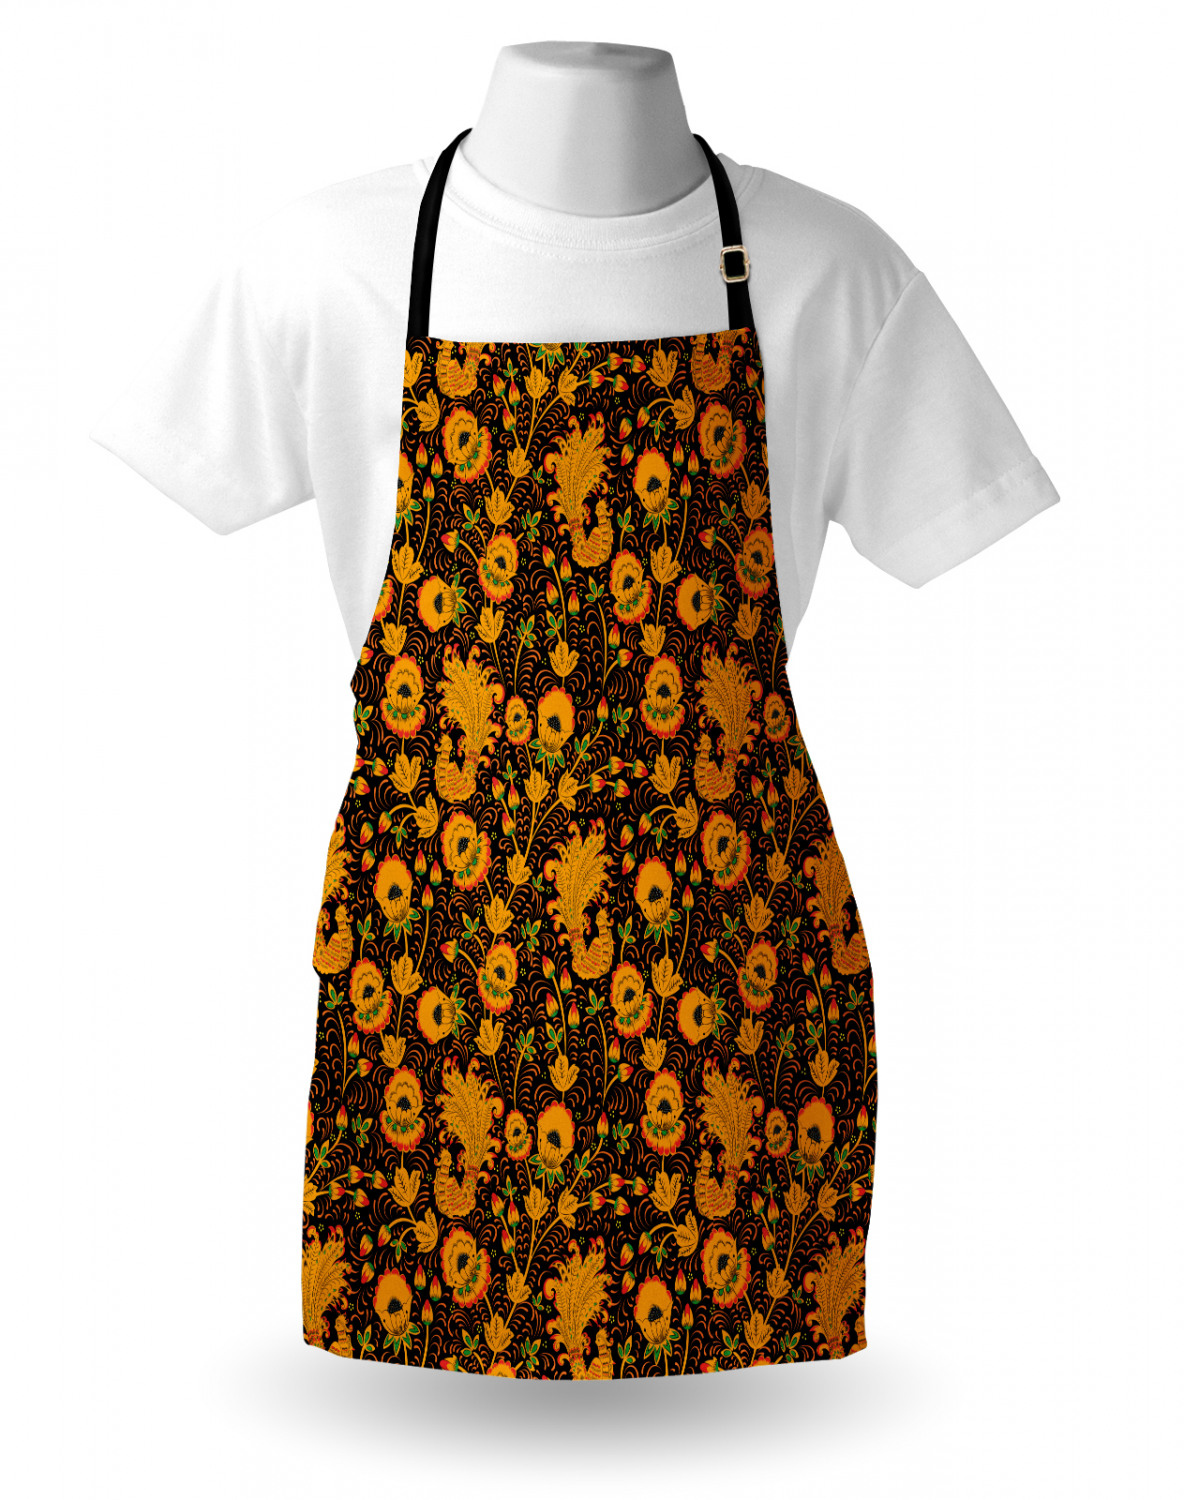 Ambesonne-Outdoor-Use-Apron-with-Adjustable-Neck-Strap-for-Gardening-and-Cooking miniatura 54